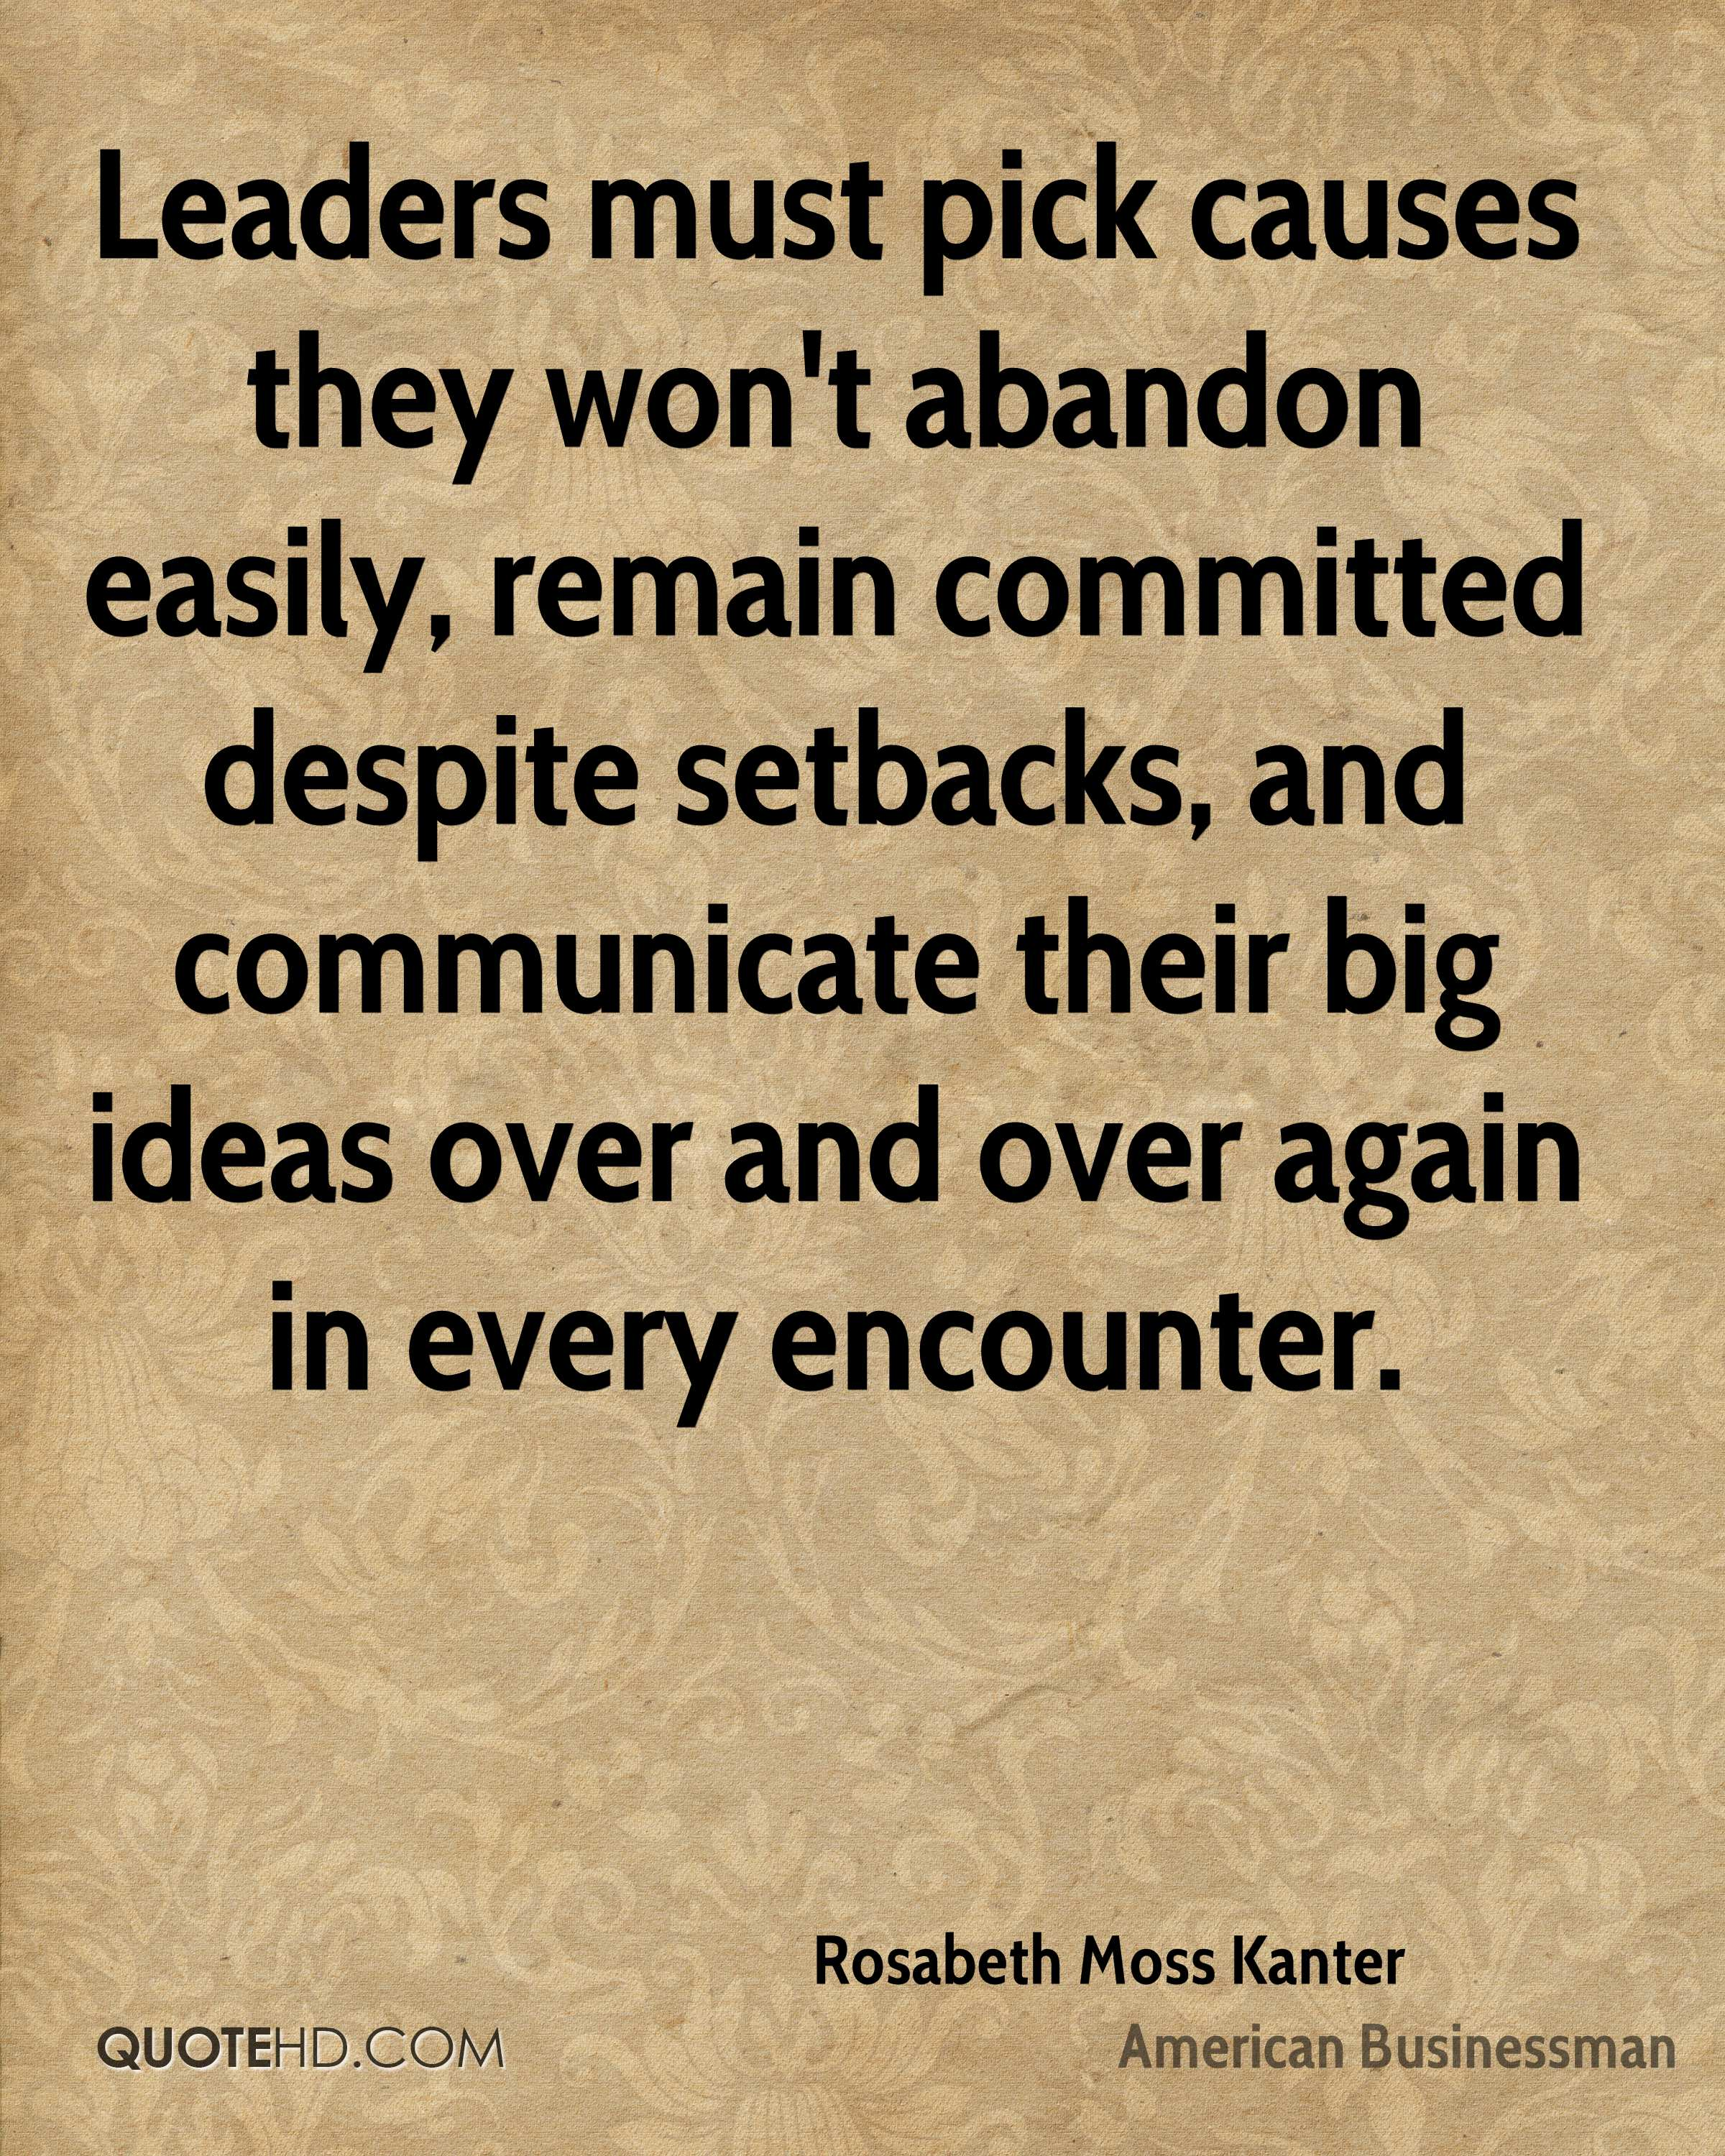 Leaders must pick causes they won't abandon easily, remain committed despite setbacks, and communicate their big ideas over and over again in every encounter.